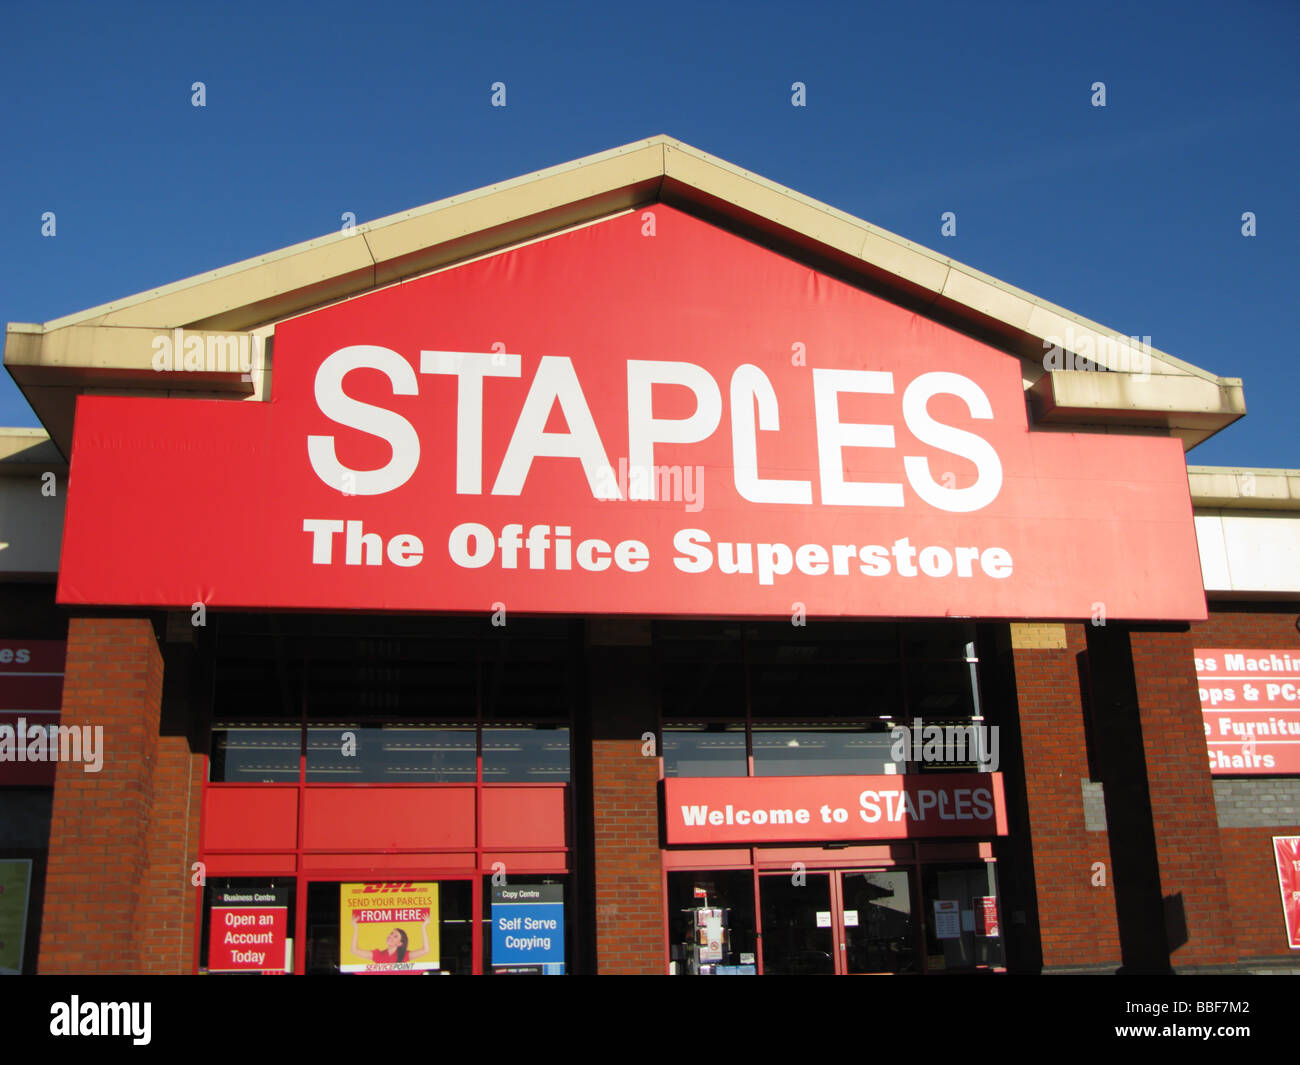 What Time Does Staples Open Today >> Staples Office Store Superstore At Marsh Barton Retail Park Exeter